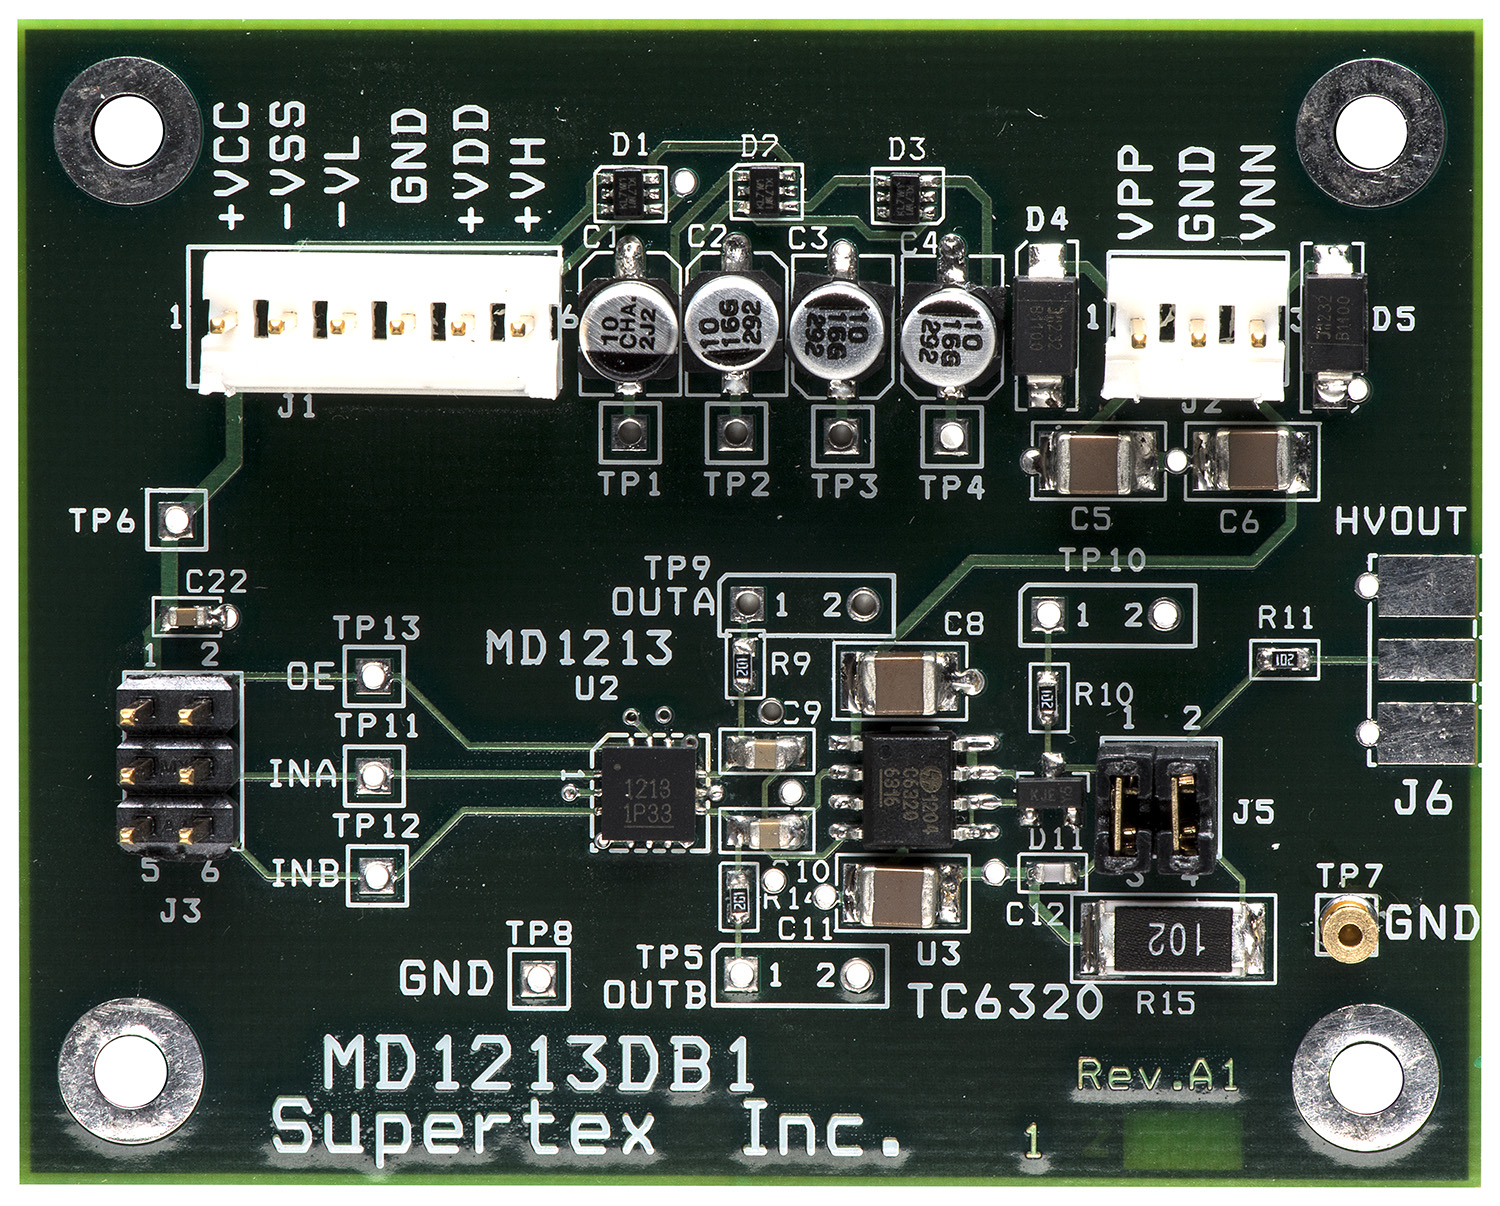 Development Tools Converter Circuit Board Pcb Ultrasonic Sensor Buy The Md1213db1 Can Drive A Transducer As Single Channel Transmitter For Ultrasound And Other Applications Demoboard Consists Of One Md1213 In